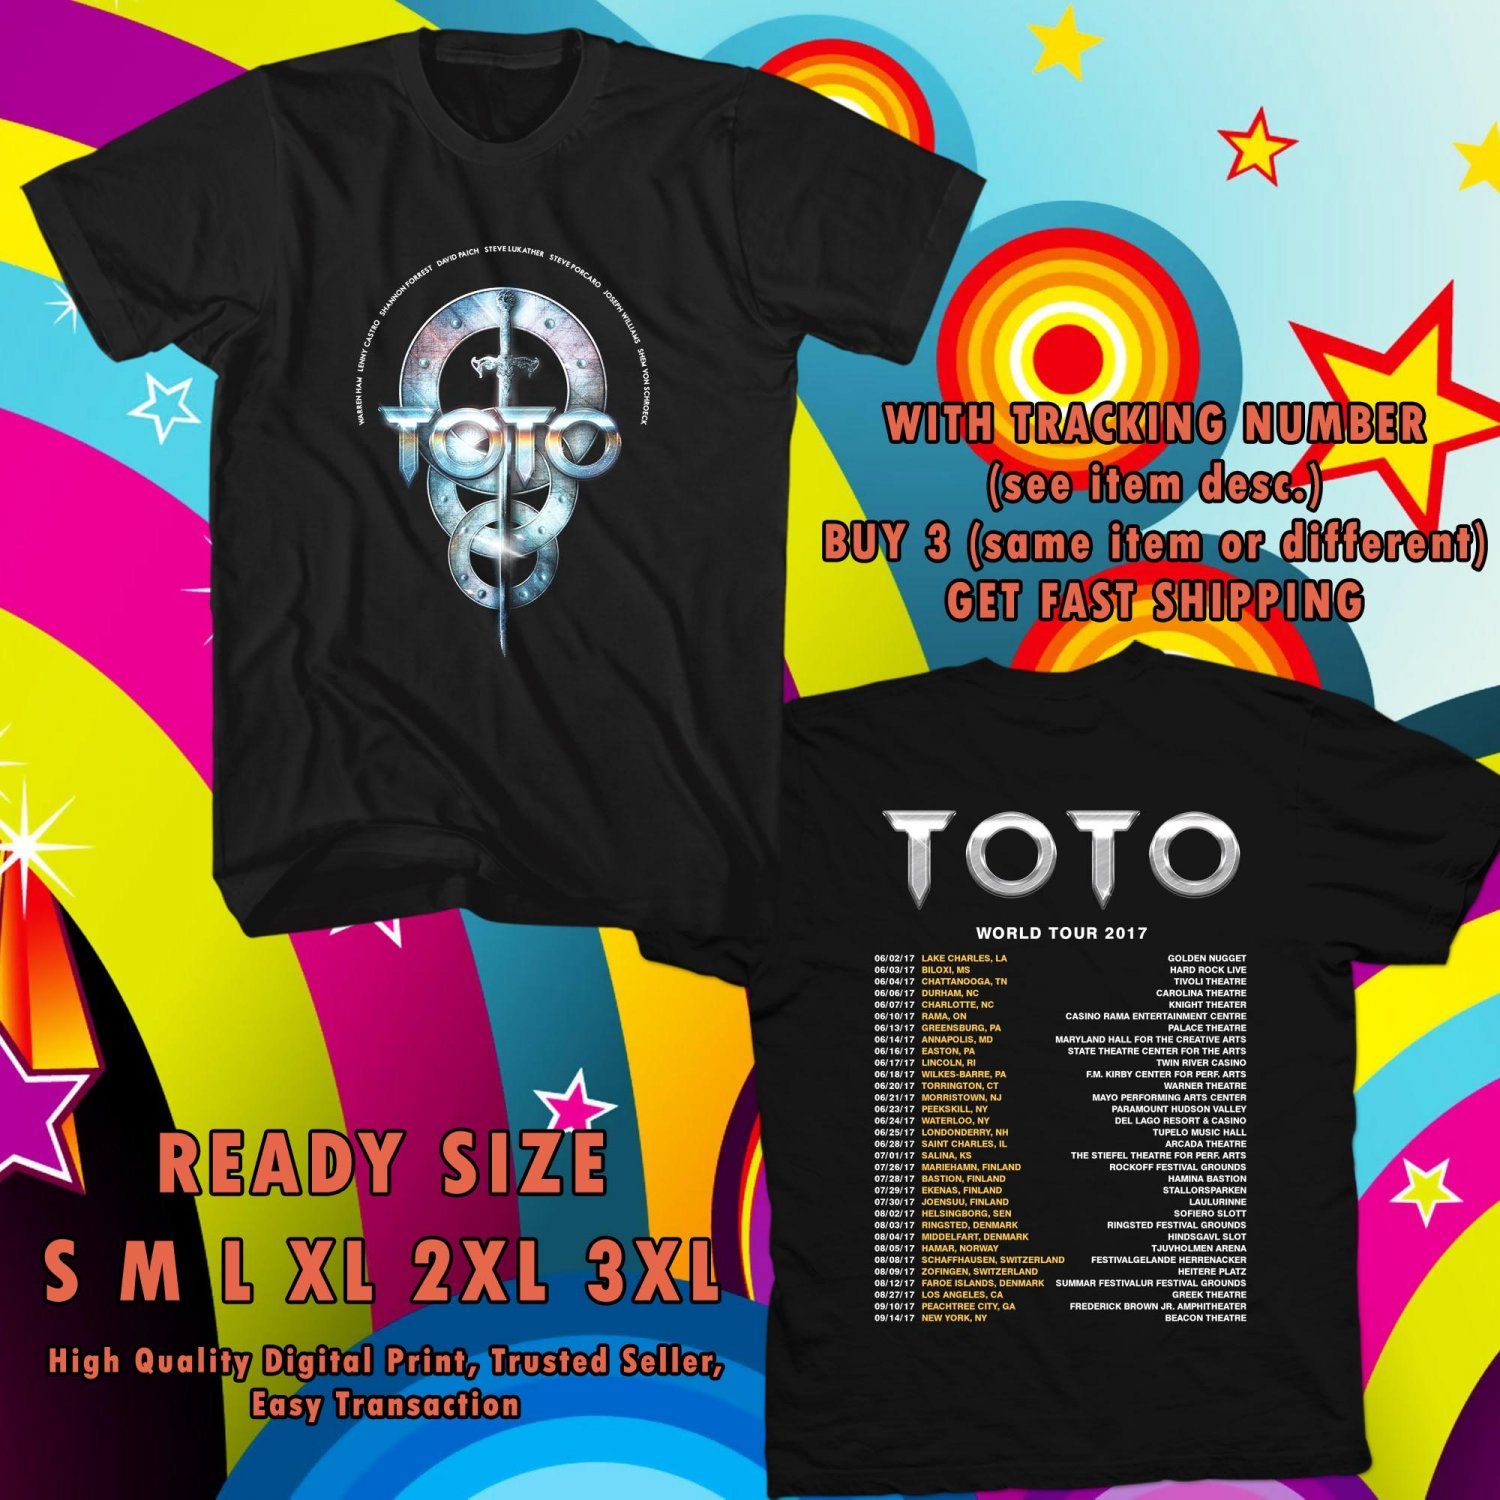 HITS TOTO BAND ON TOUR 2017 BLACK TEE 2SIDE ASTR